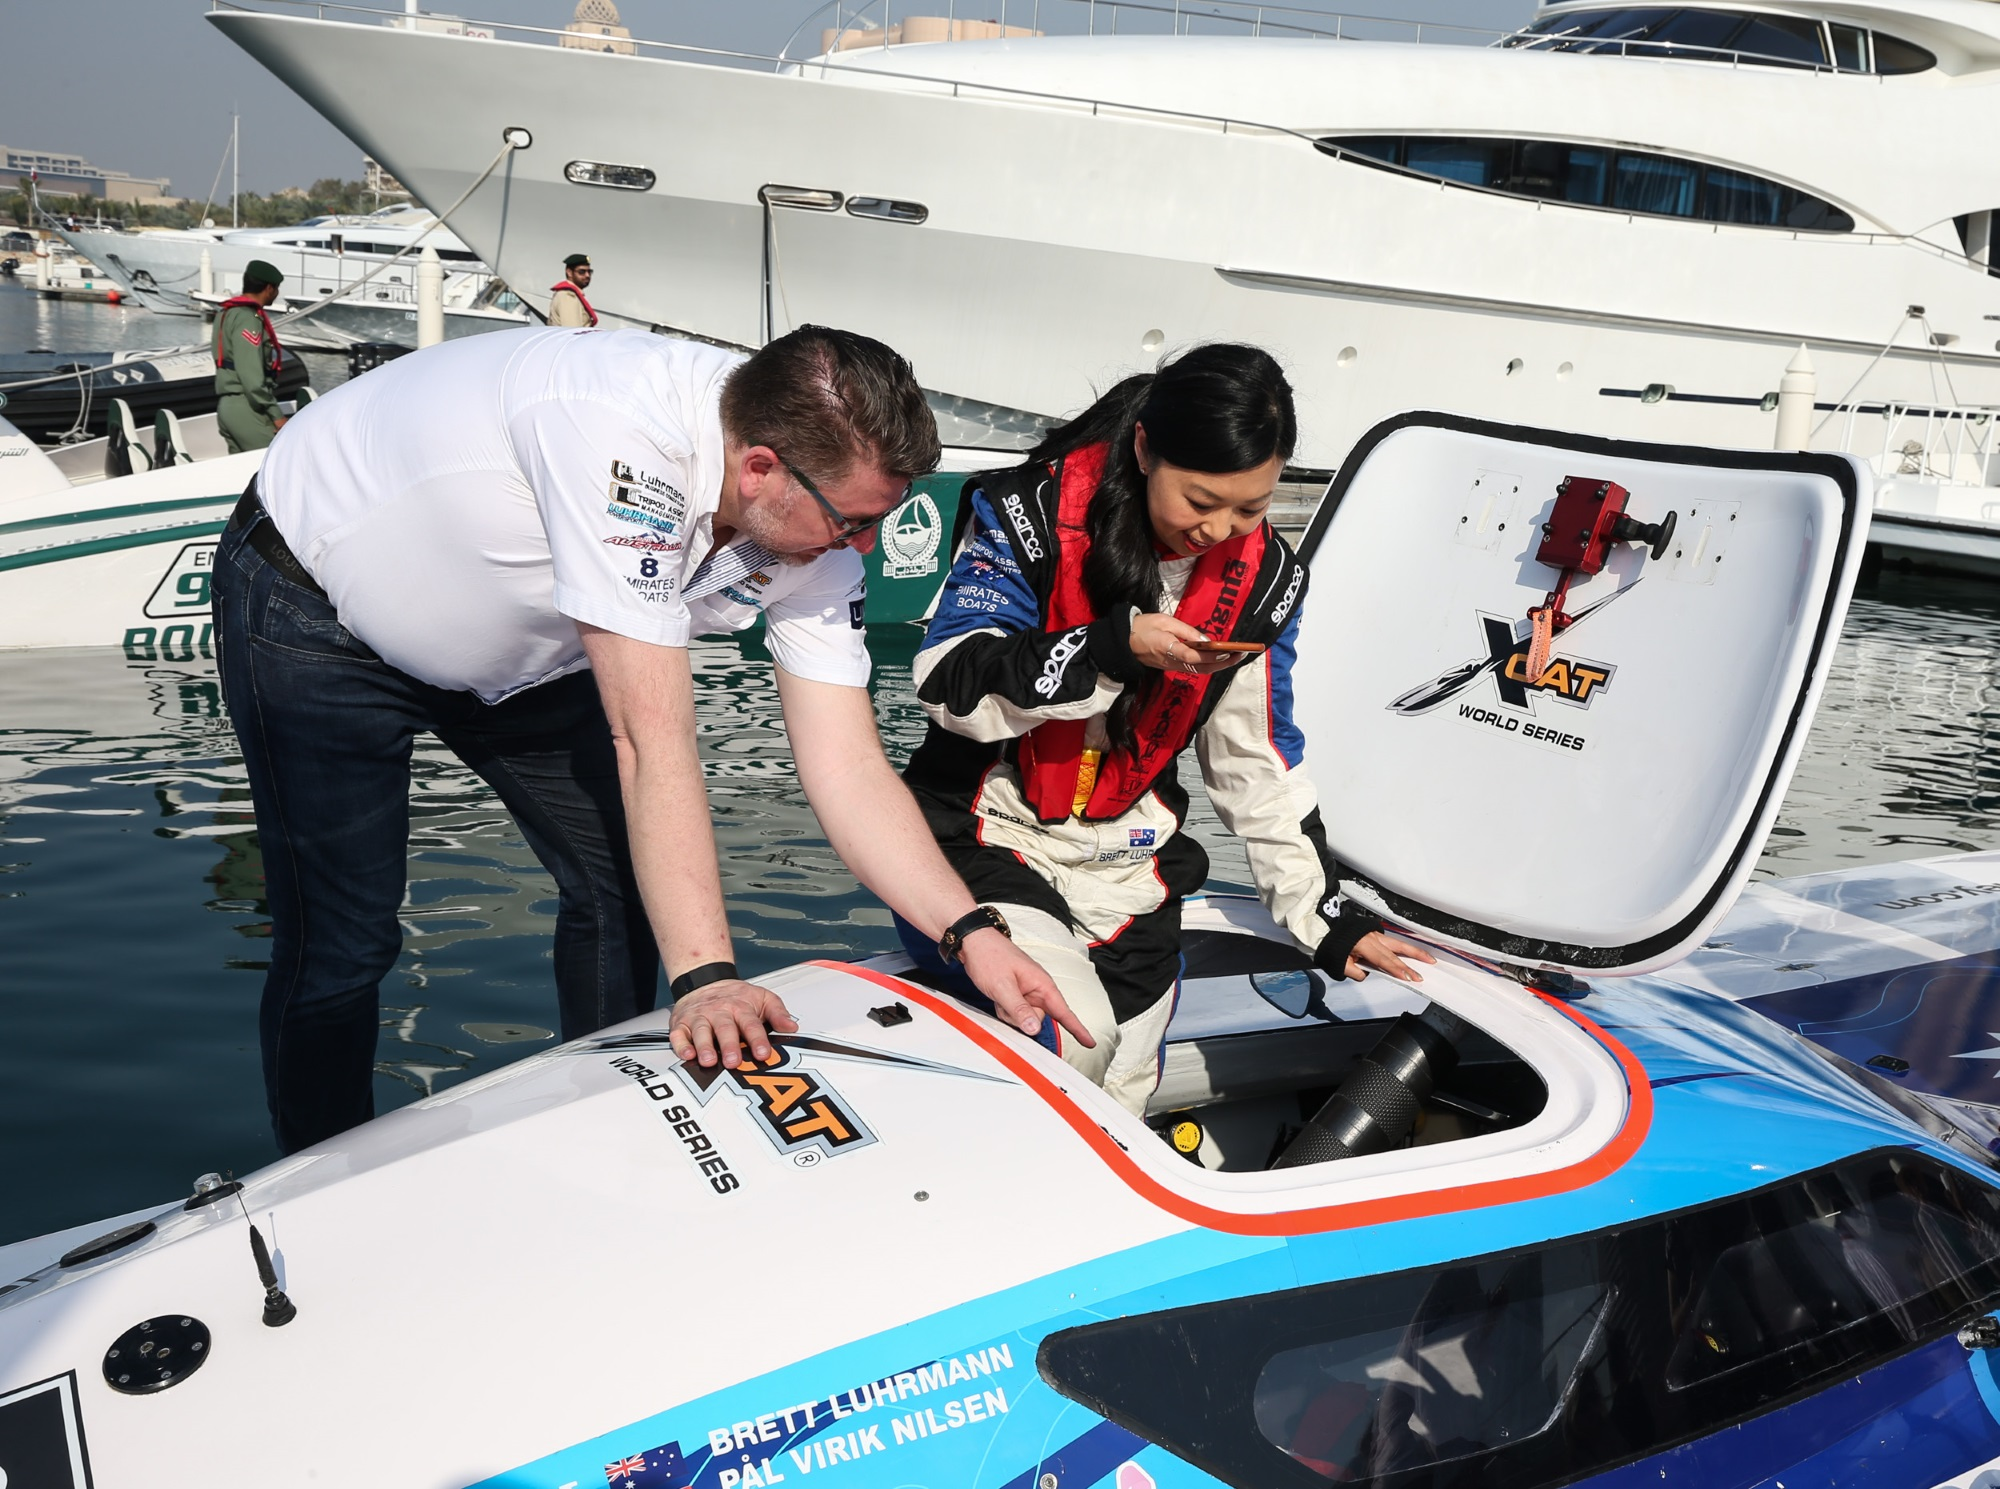 Extreme Offshore Powerboat Catamaran Takes Thrill Seekers on Ride of Their Life at Dubai International Boat Show